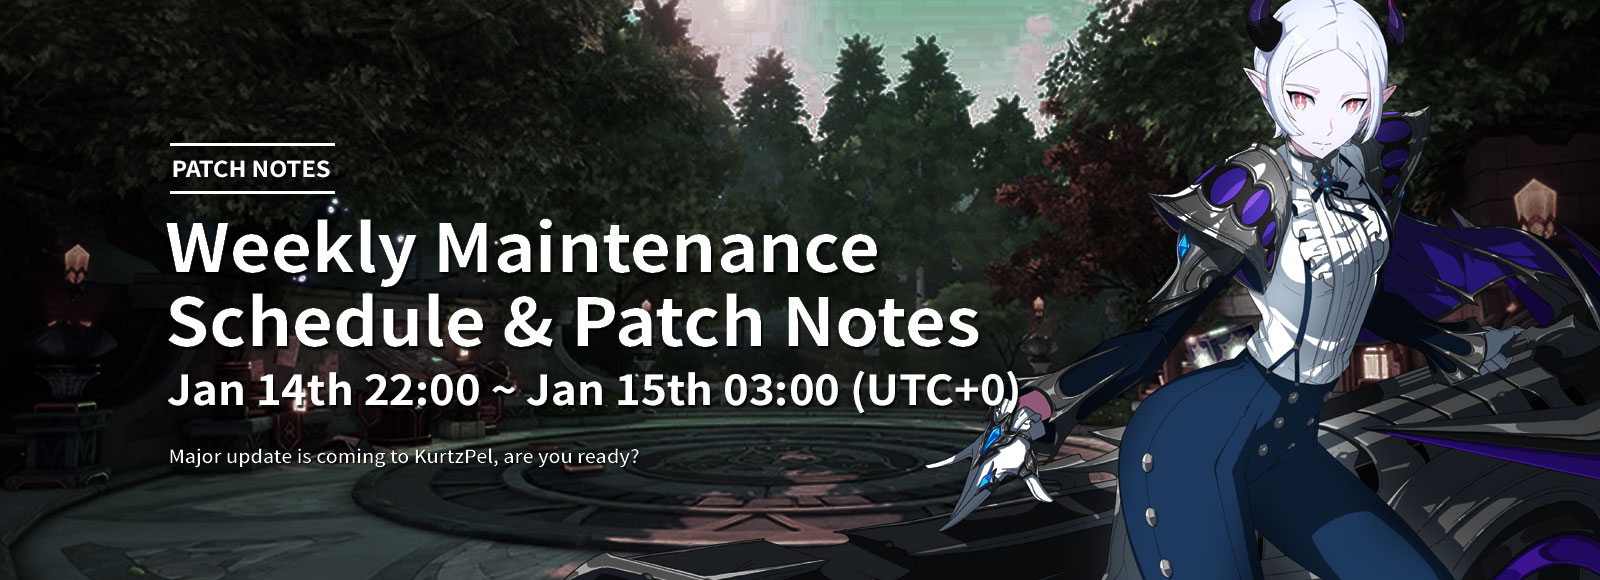 January 15th 2020 Weekly Maintenance Schedule & Patch Notes